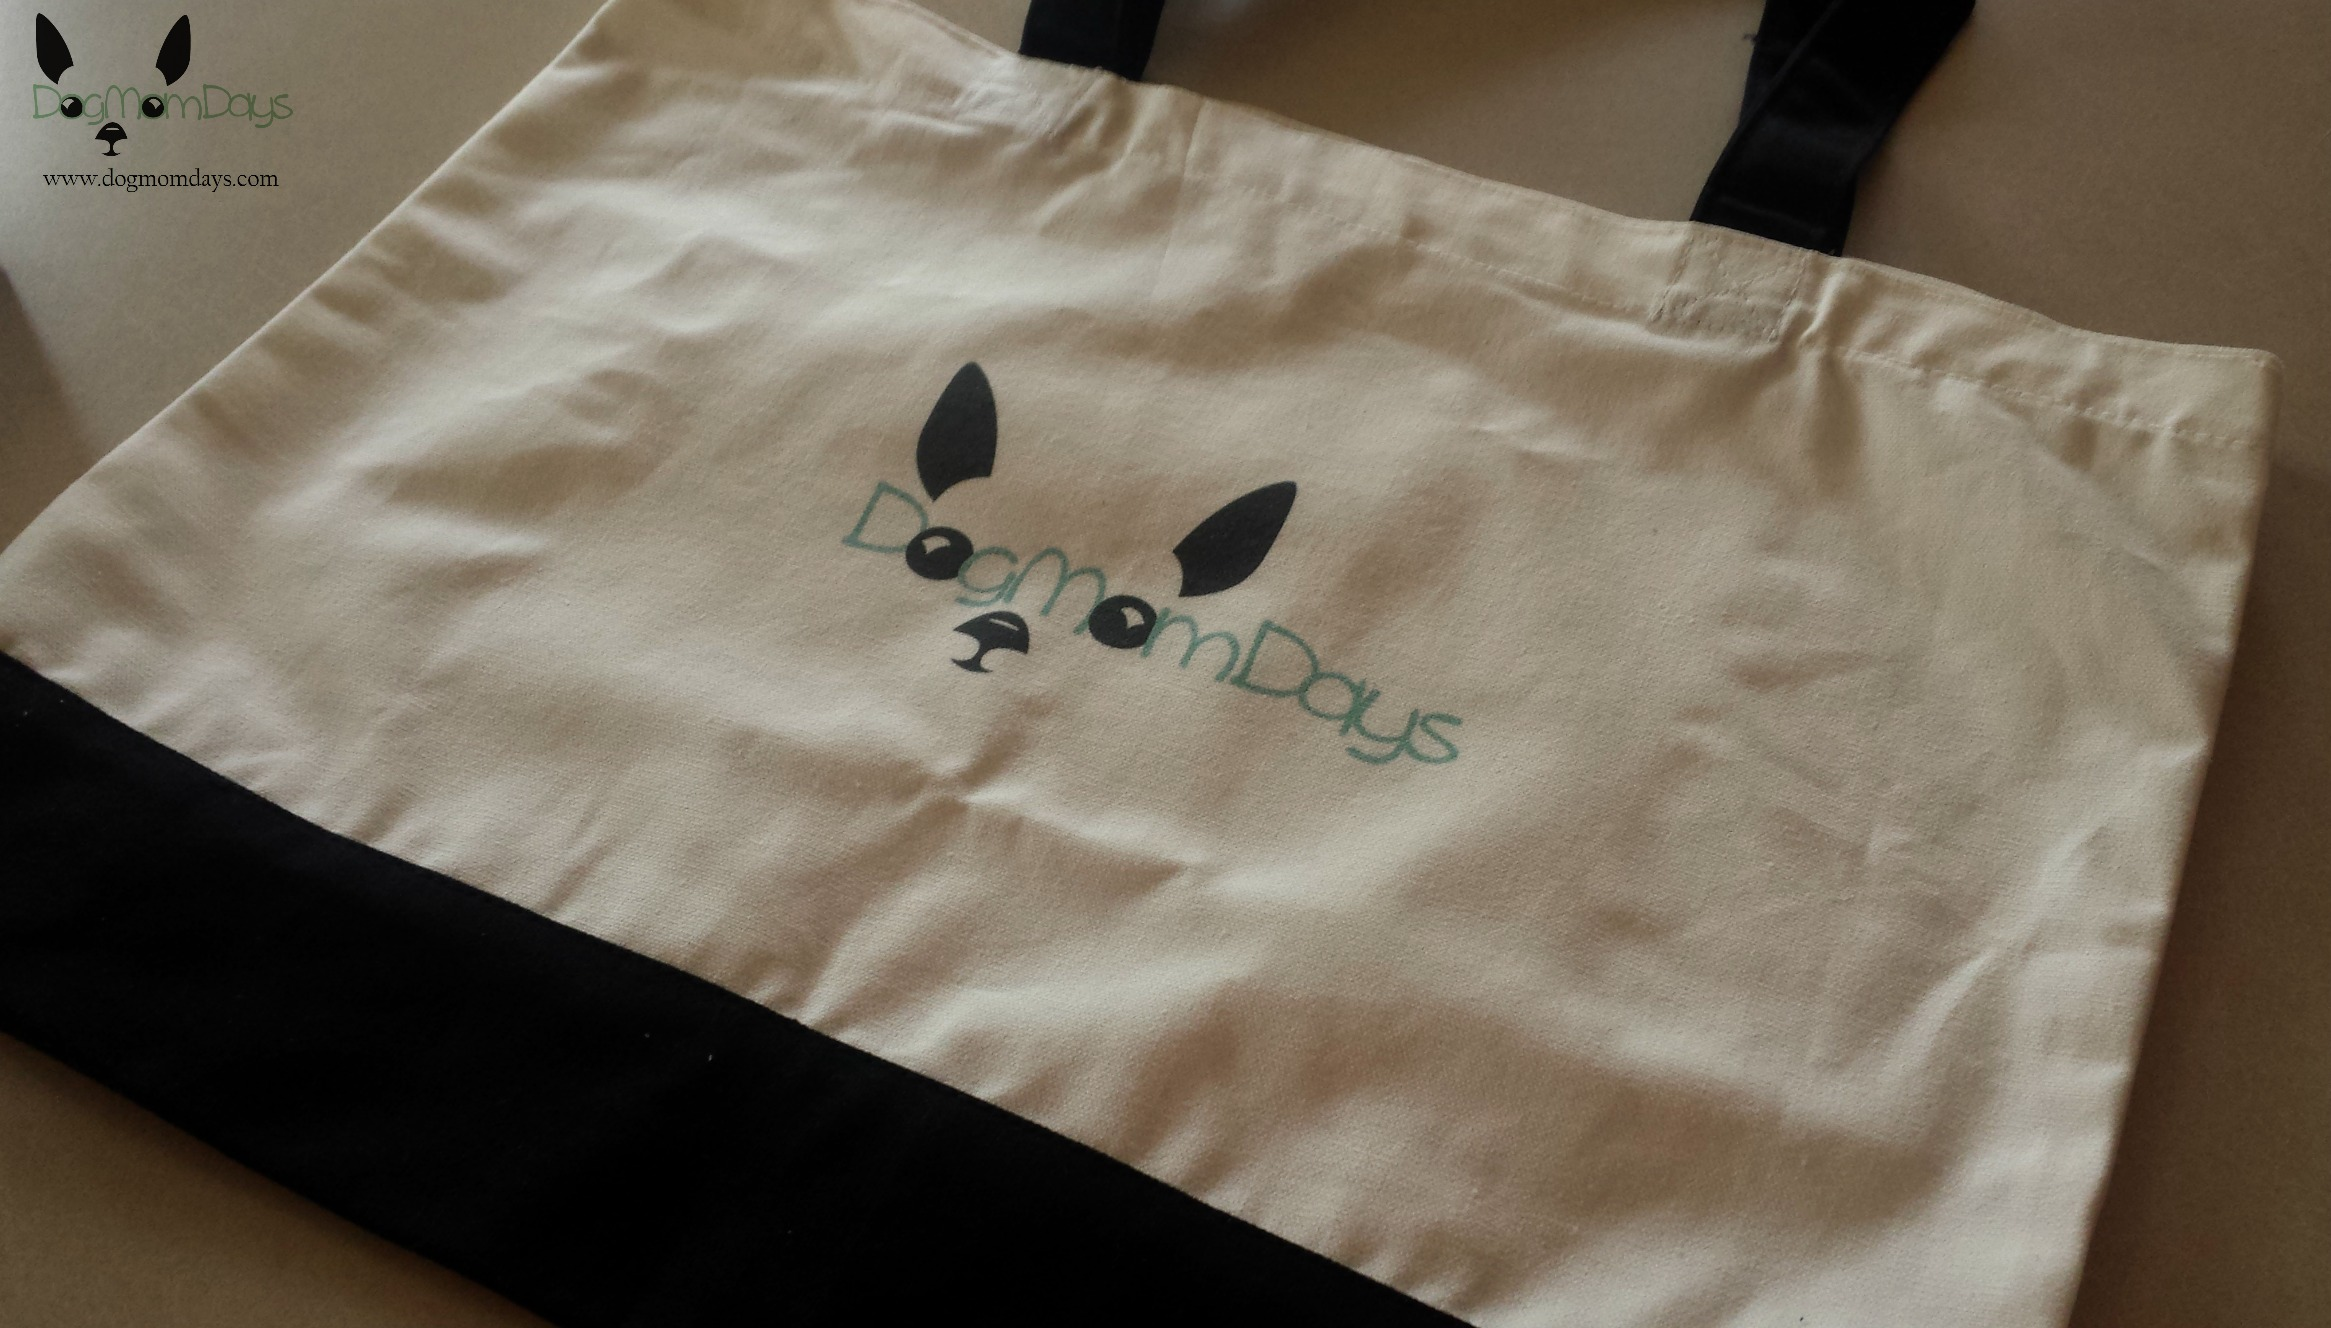 The tote bag that I custom ordered just for the conference! I'll need it to lug around notebooks, Wynston's things, business cards and everything else needed at a conference!